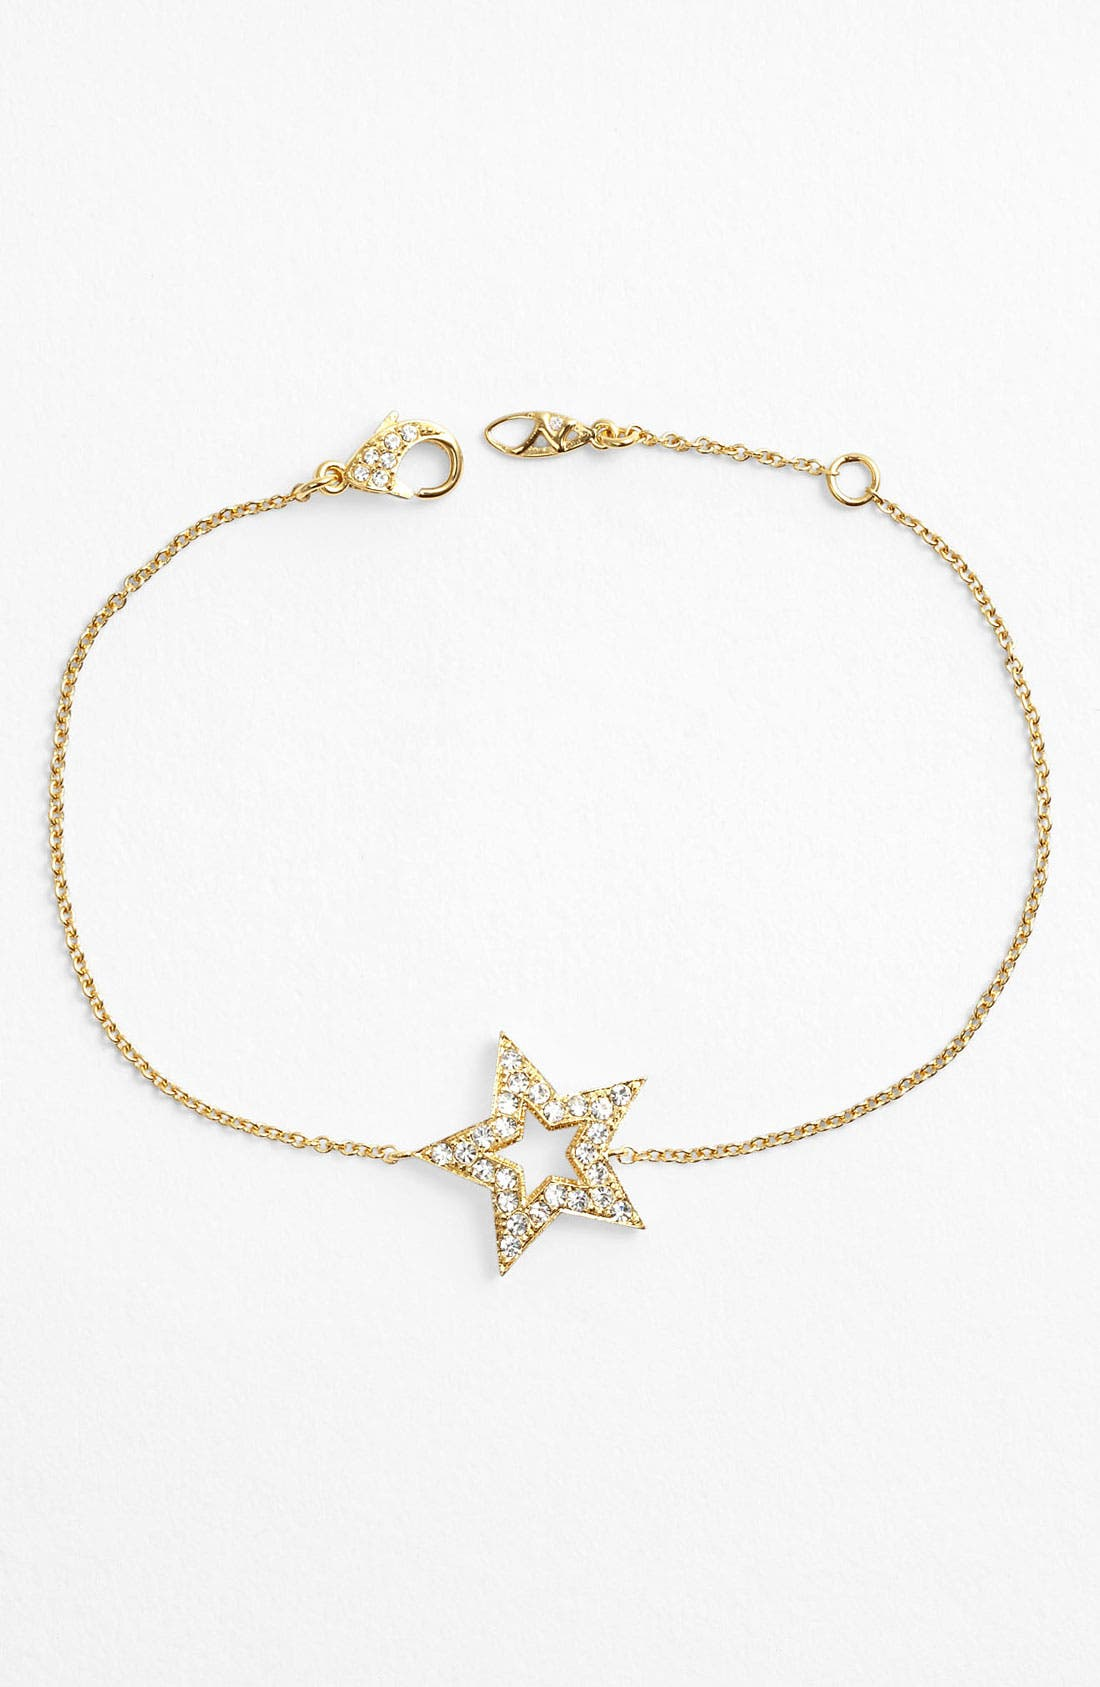 Main Image - Nadri Star Station Bracelet (Nordstrom Exclusive)